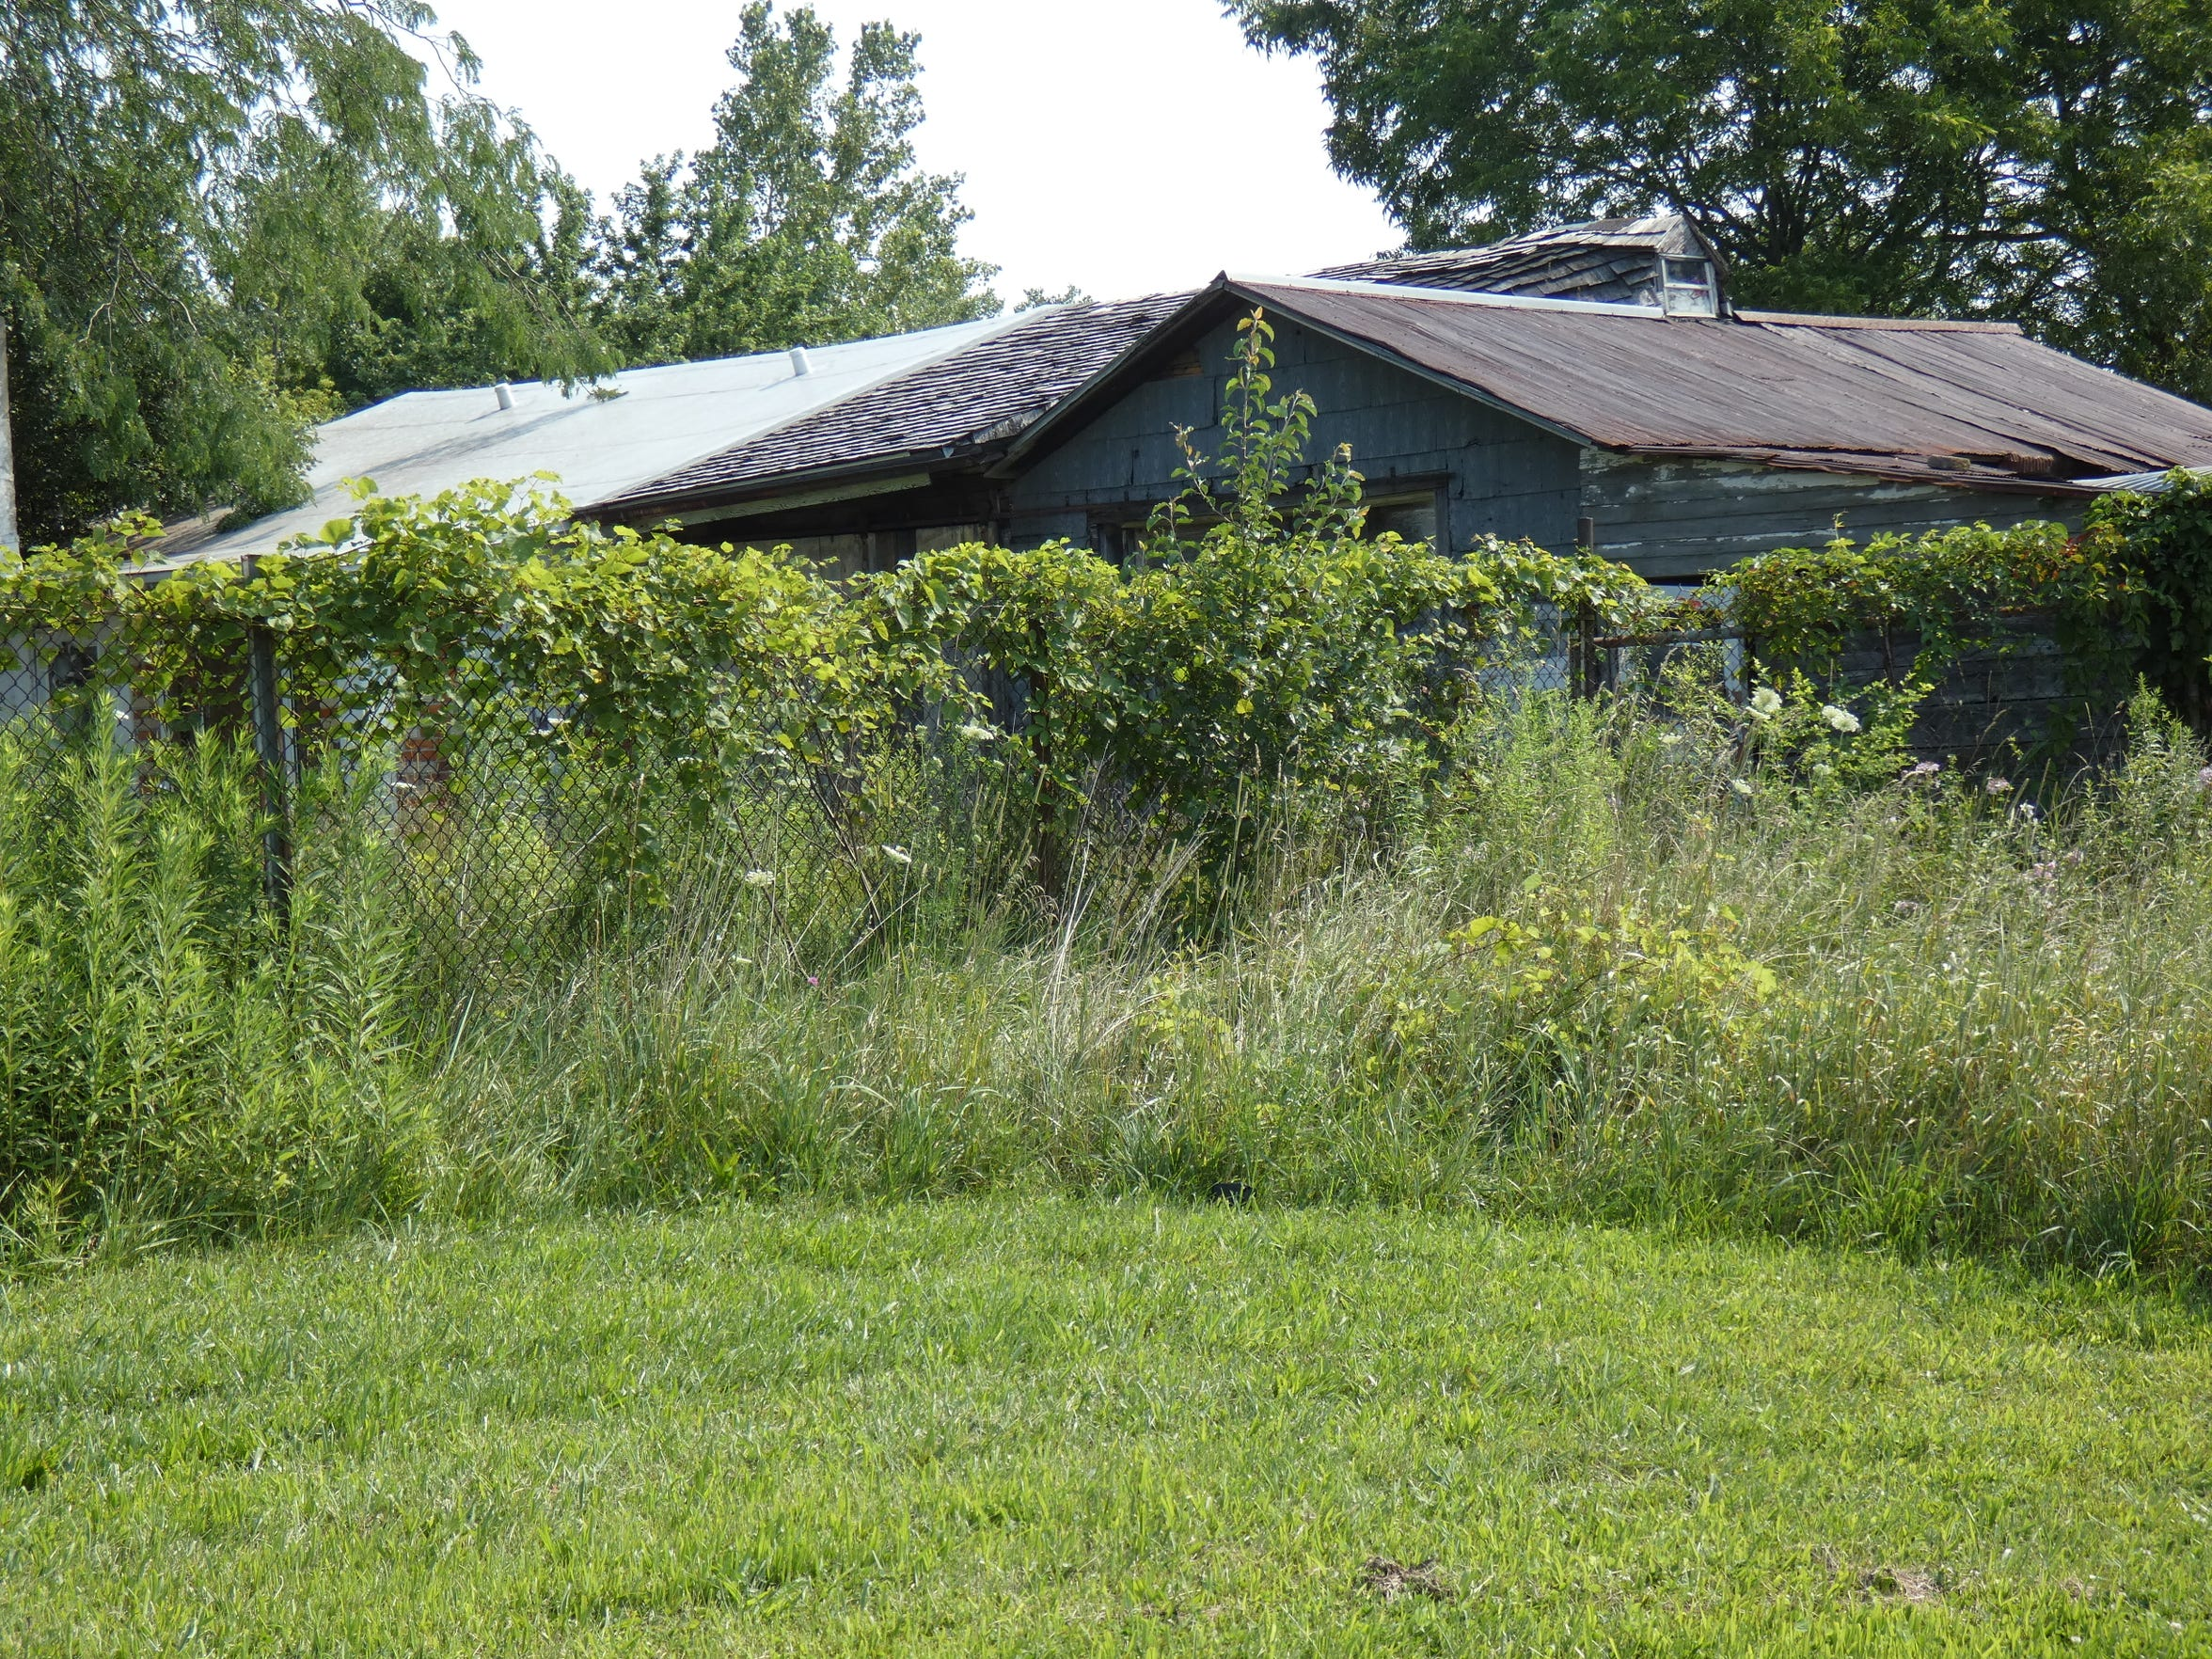 A vacant house at 275 Rodriquez St. is engulfed by overgrown grass and weeds.